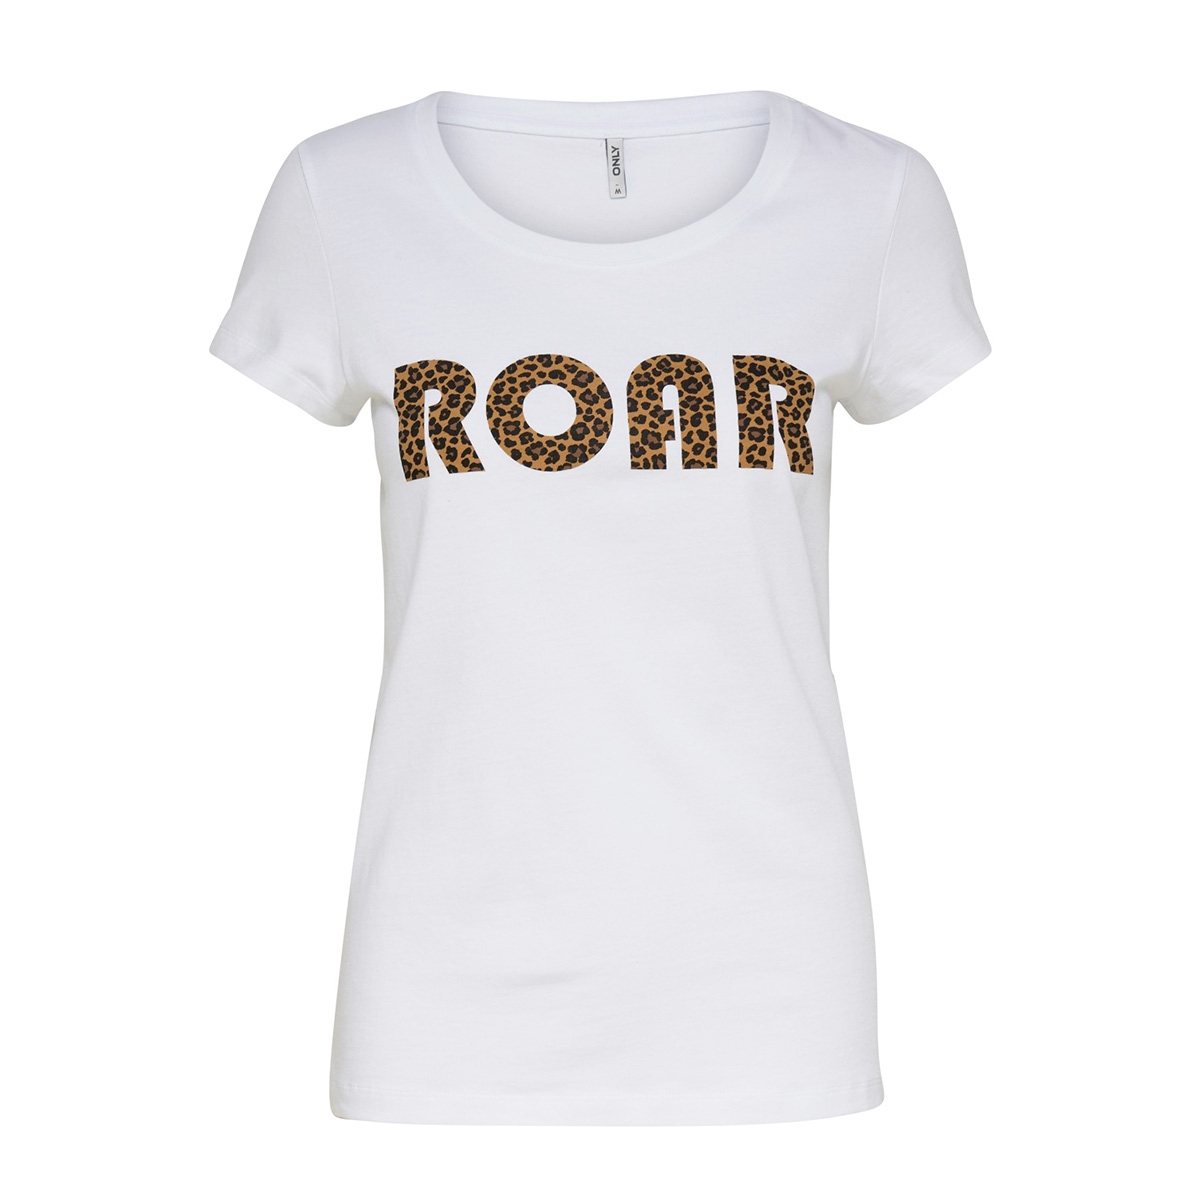 onlroar s/s top jrs 15184236 only t-shirt bright white/leo